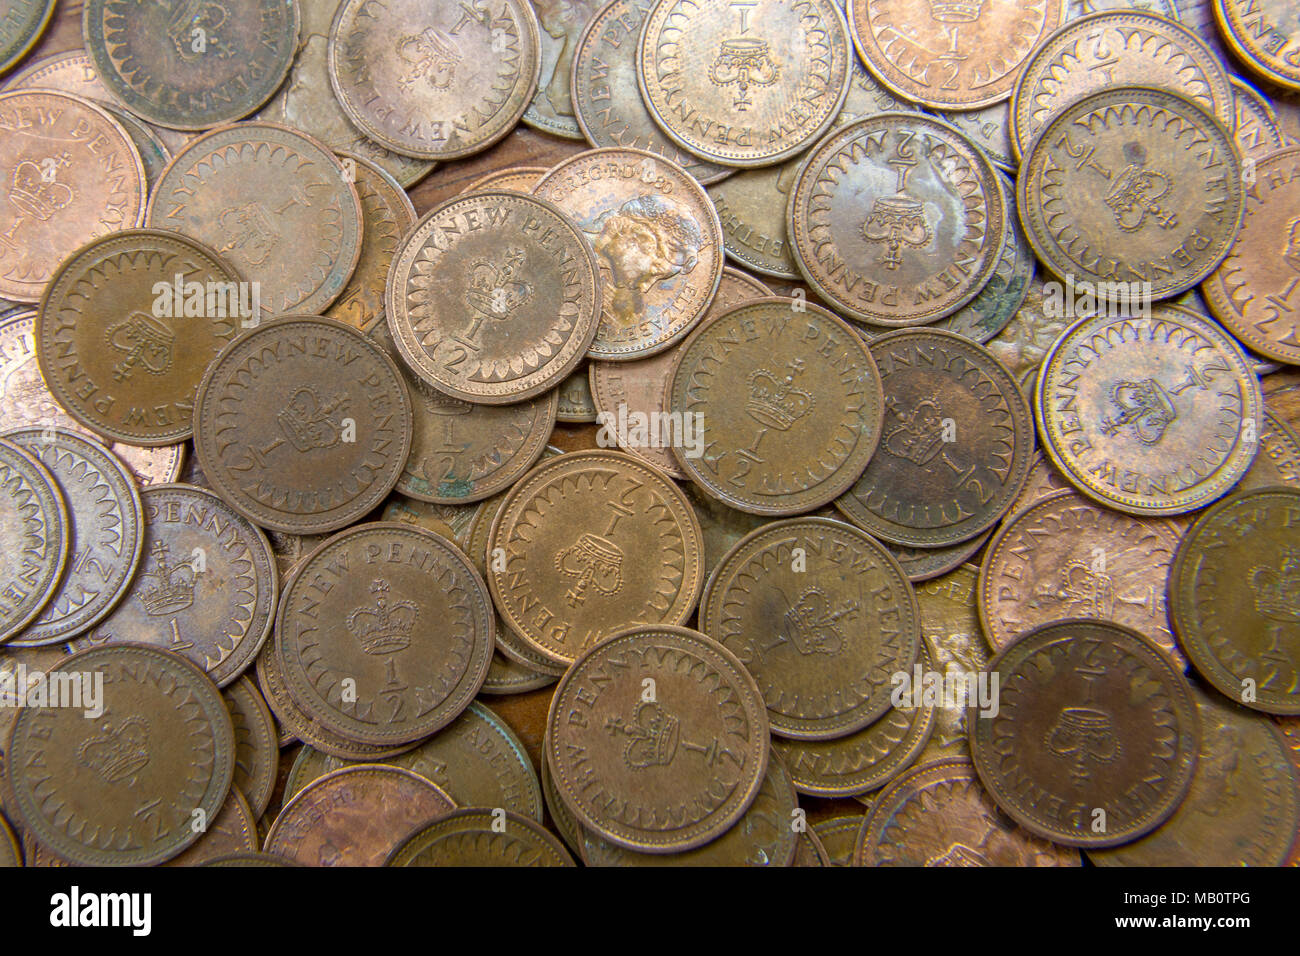 A large collection of half pennies. The coin was demonetised and withdrawn from circulation in December 1984. Stock Photo